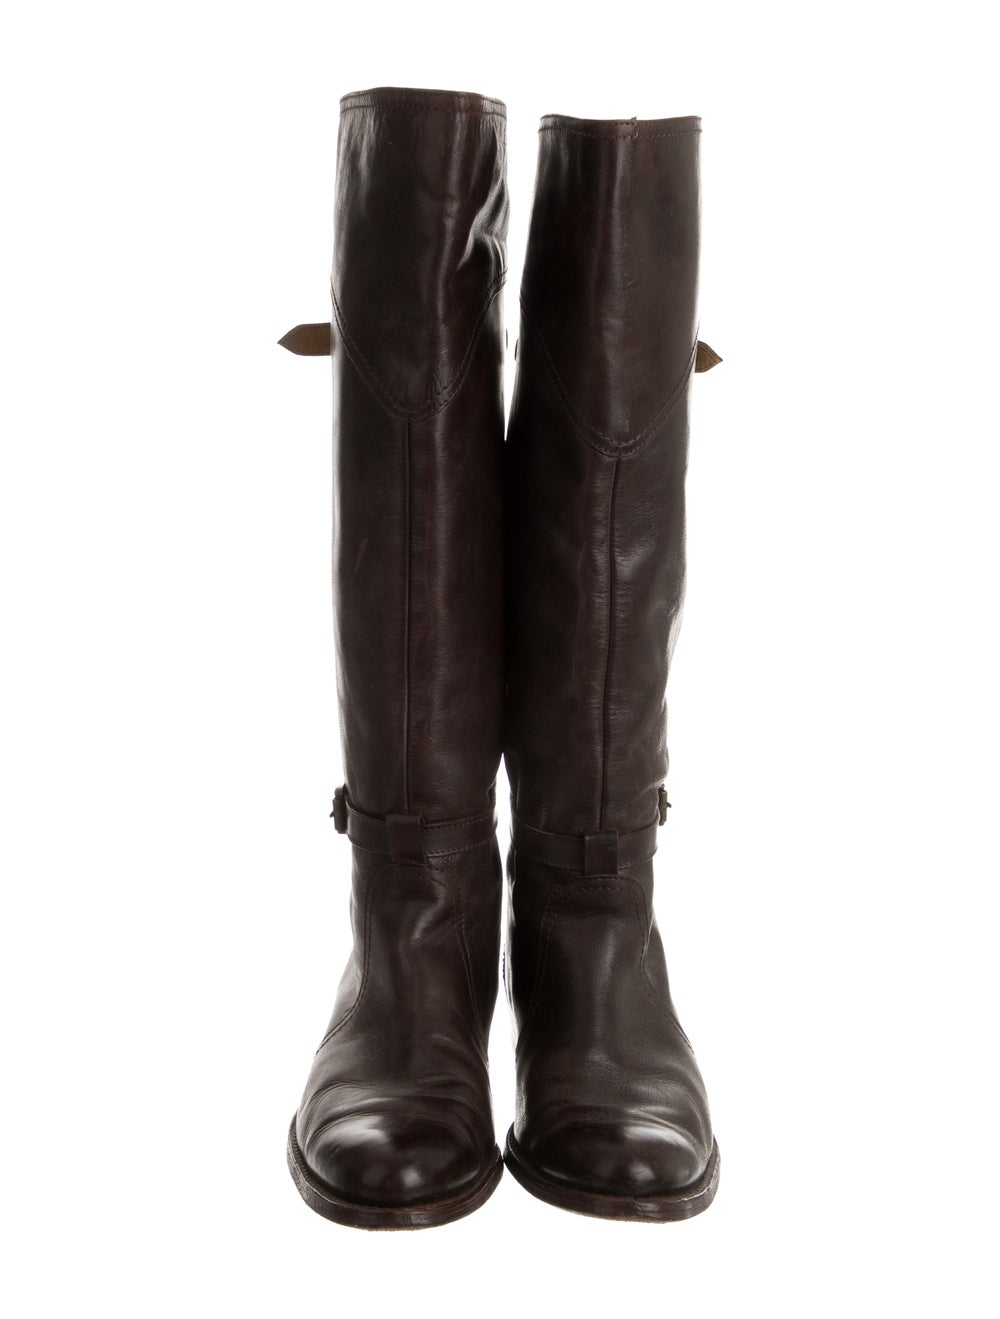 Frye Leather Knee-High Boots Brown - image 3